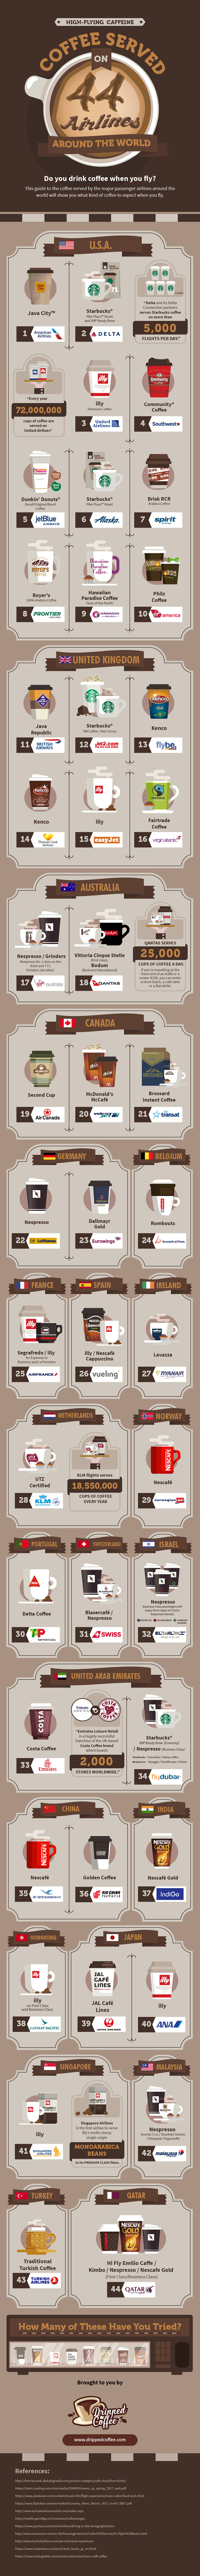 What's Your Poison: Coffees Served on 44 International Airlines - Infographic